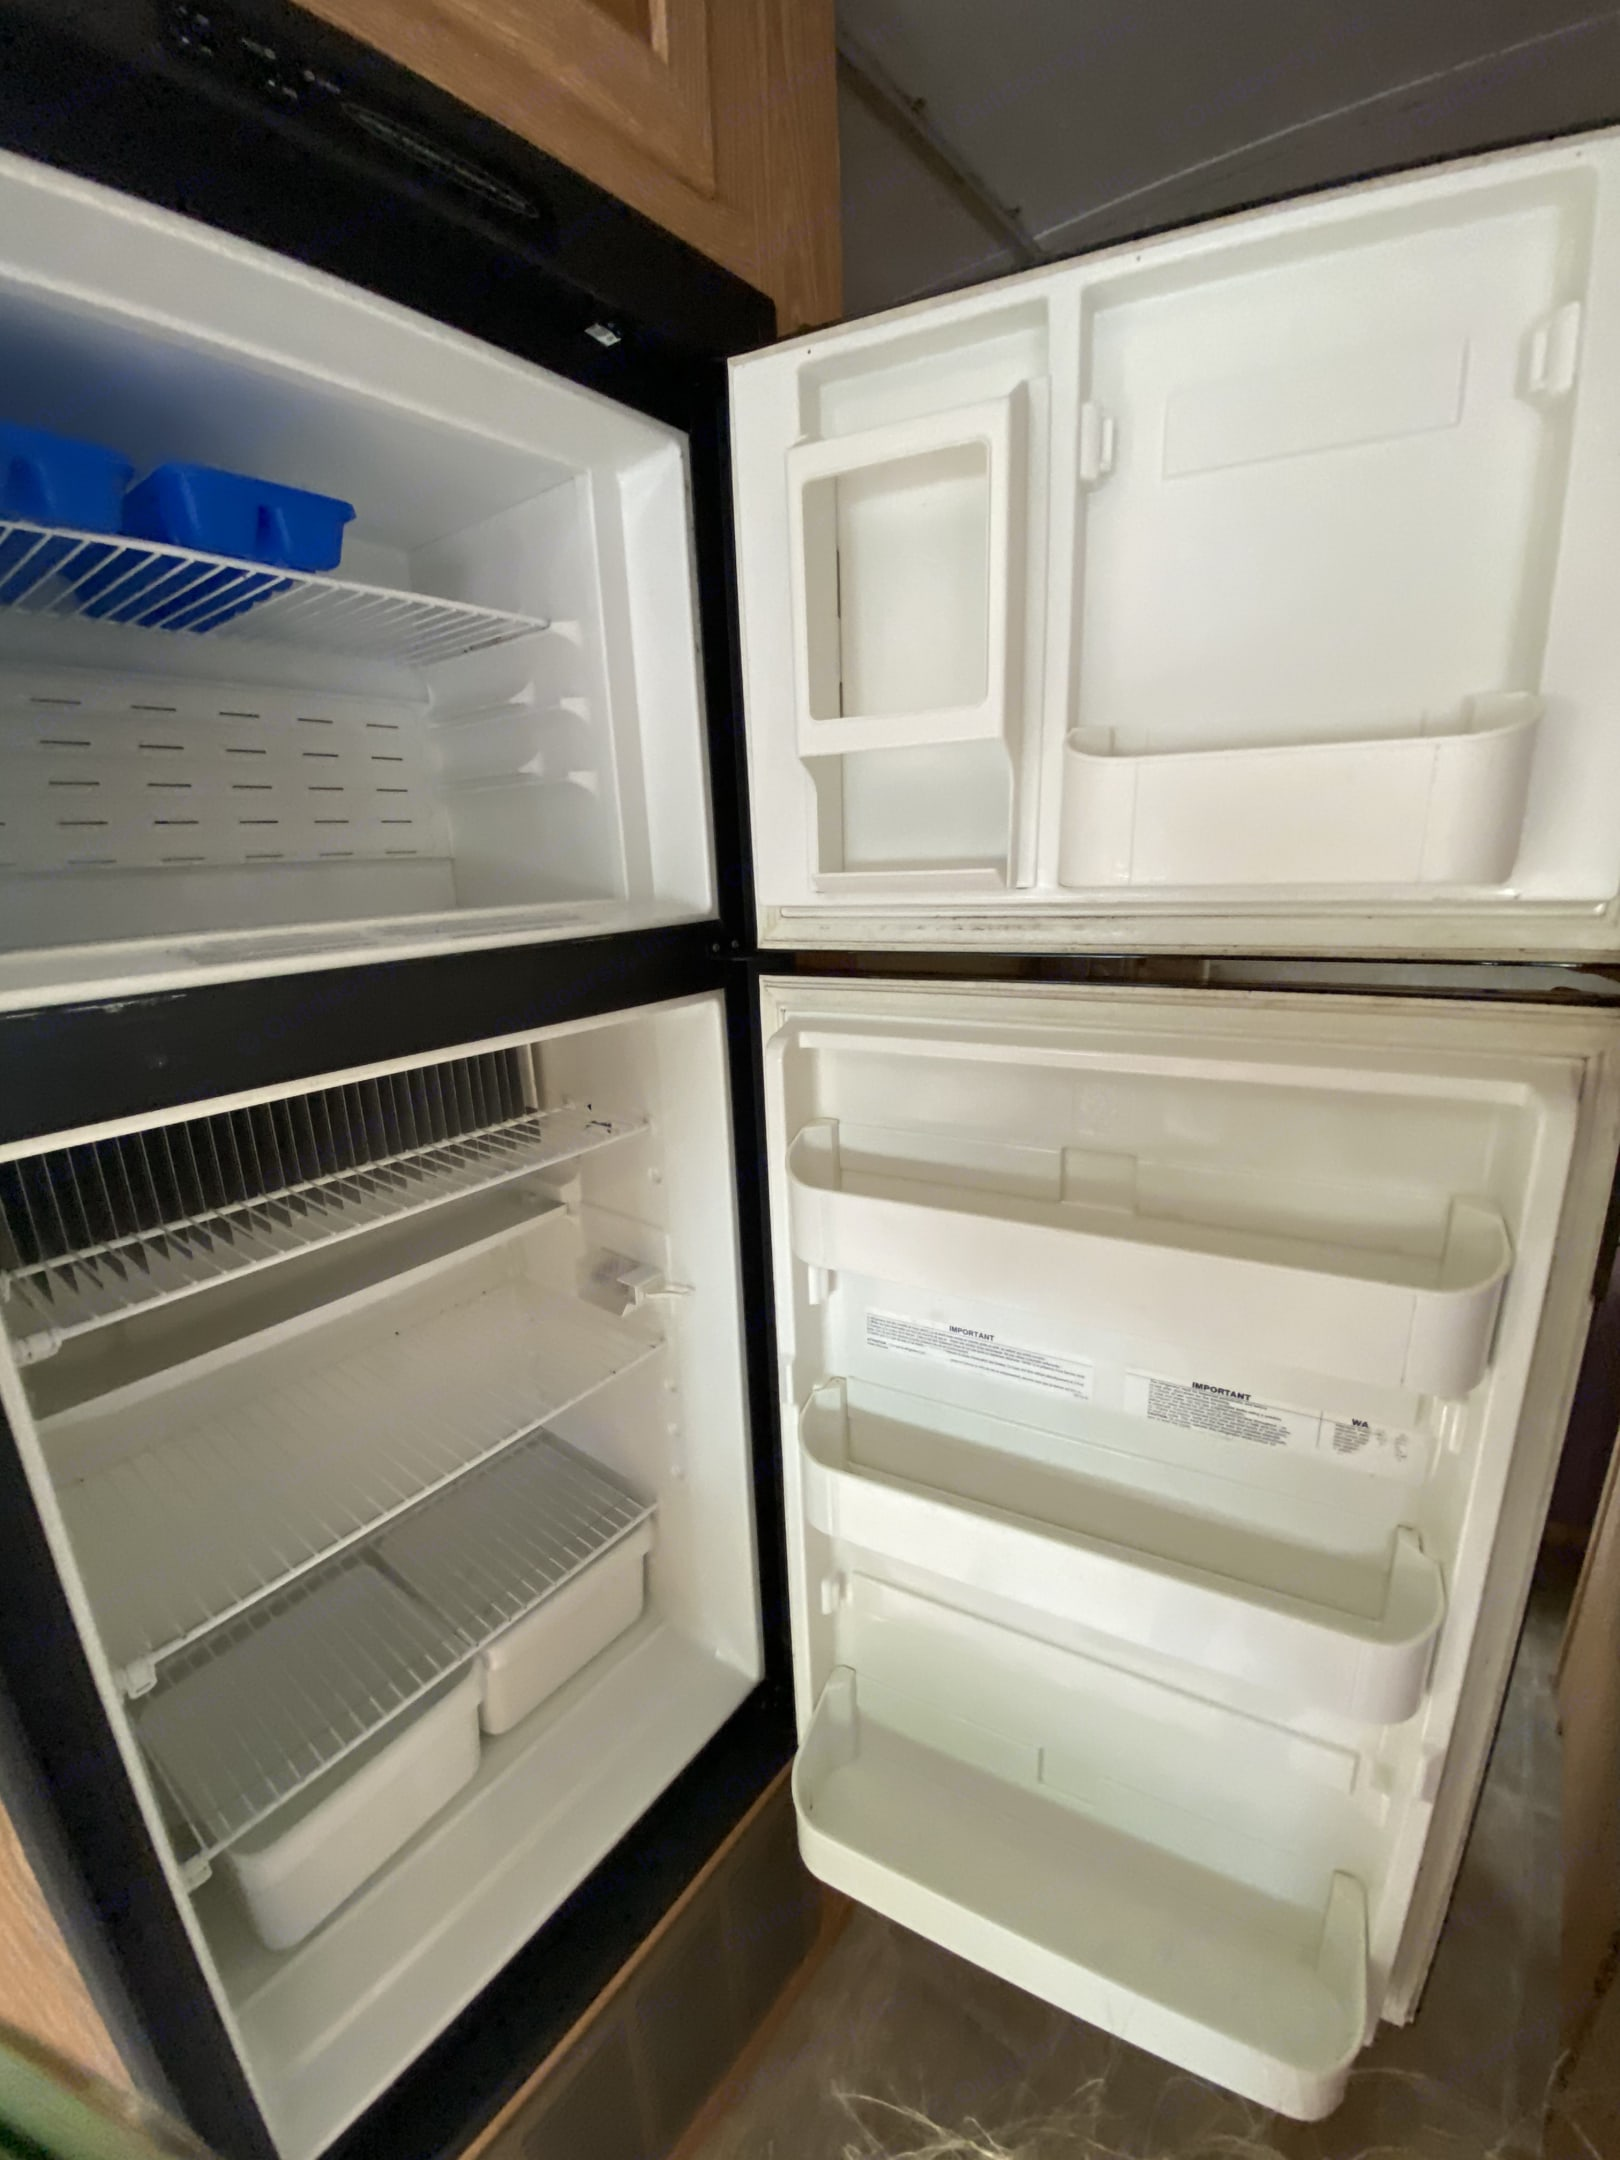 Small shelves, door shelving, and vegetable drawers.  Think hotel sized refrigerator space.. Forest River Sunseeker 2005